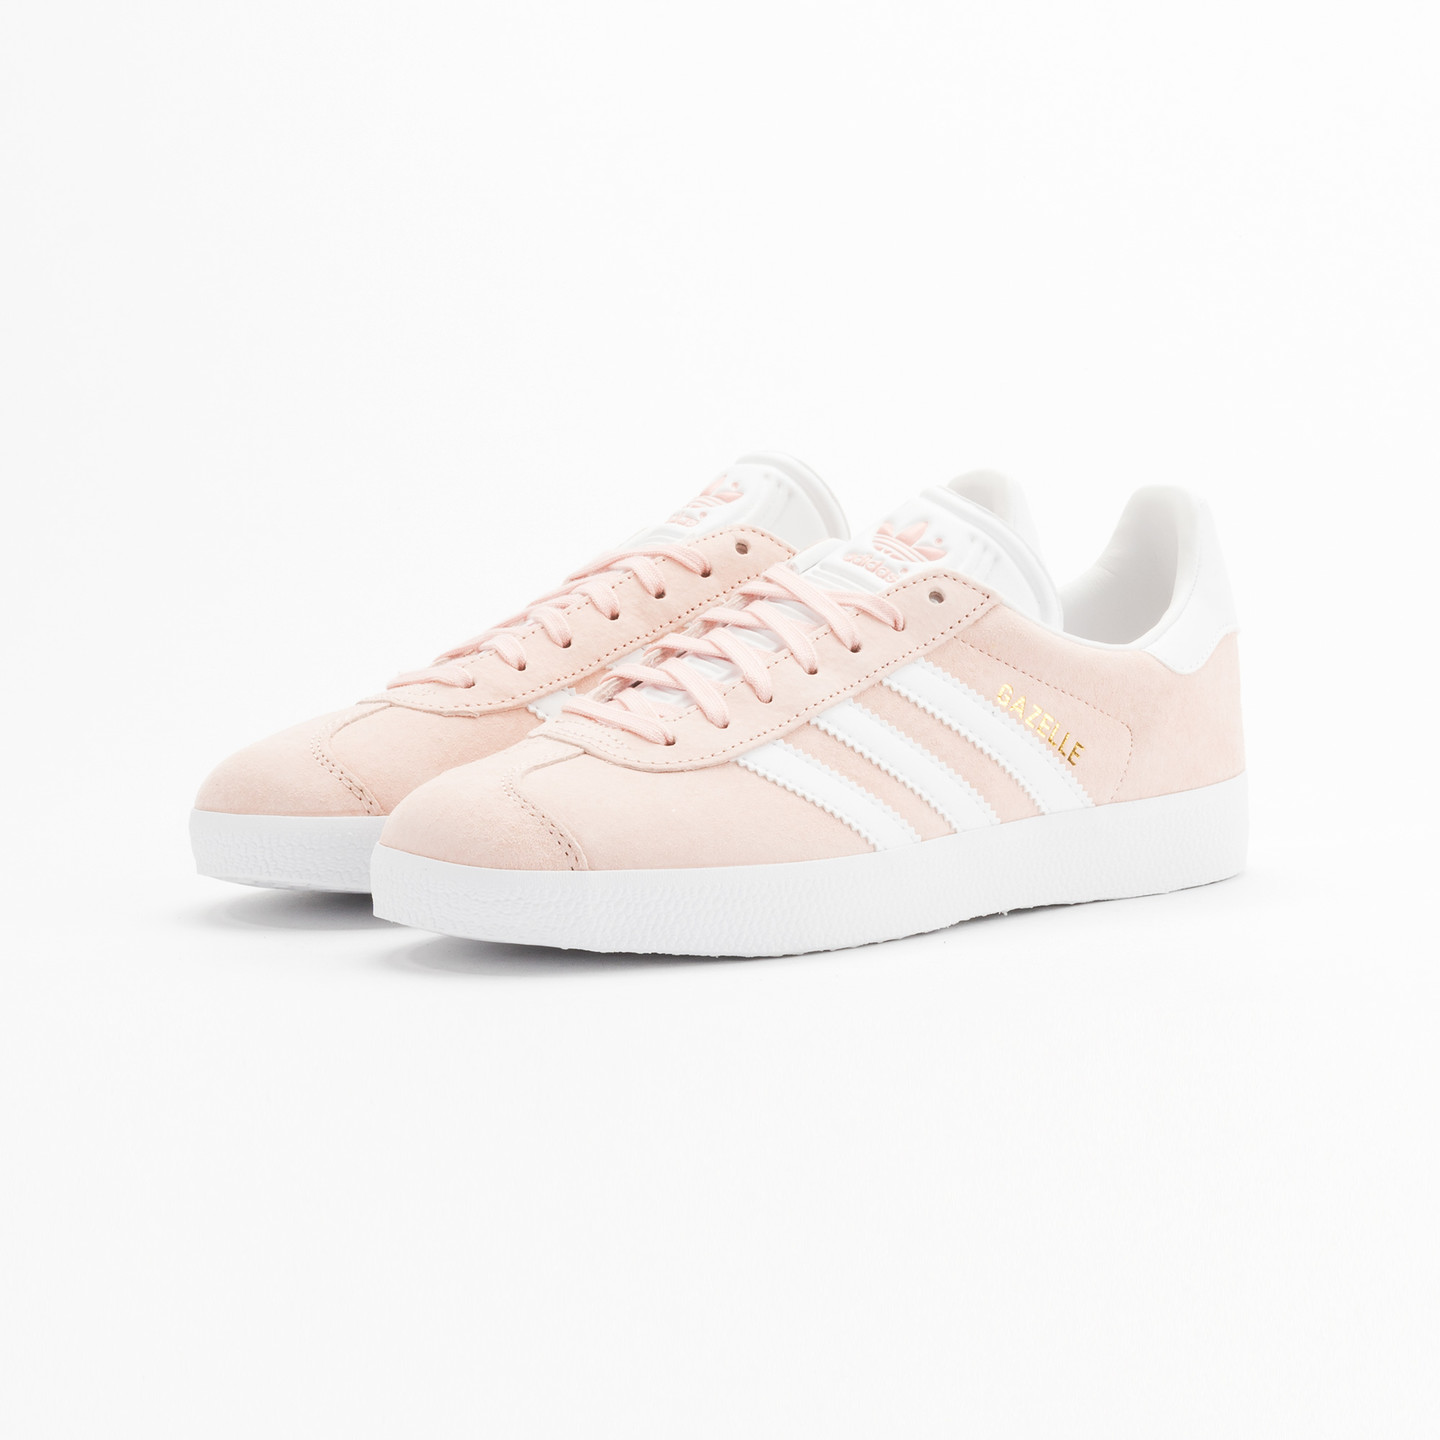 Adidas Gazelle  Vapor Pink / White / Gold Metallic BB5472-38.66